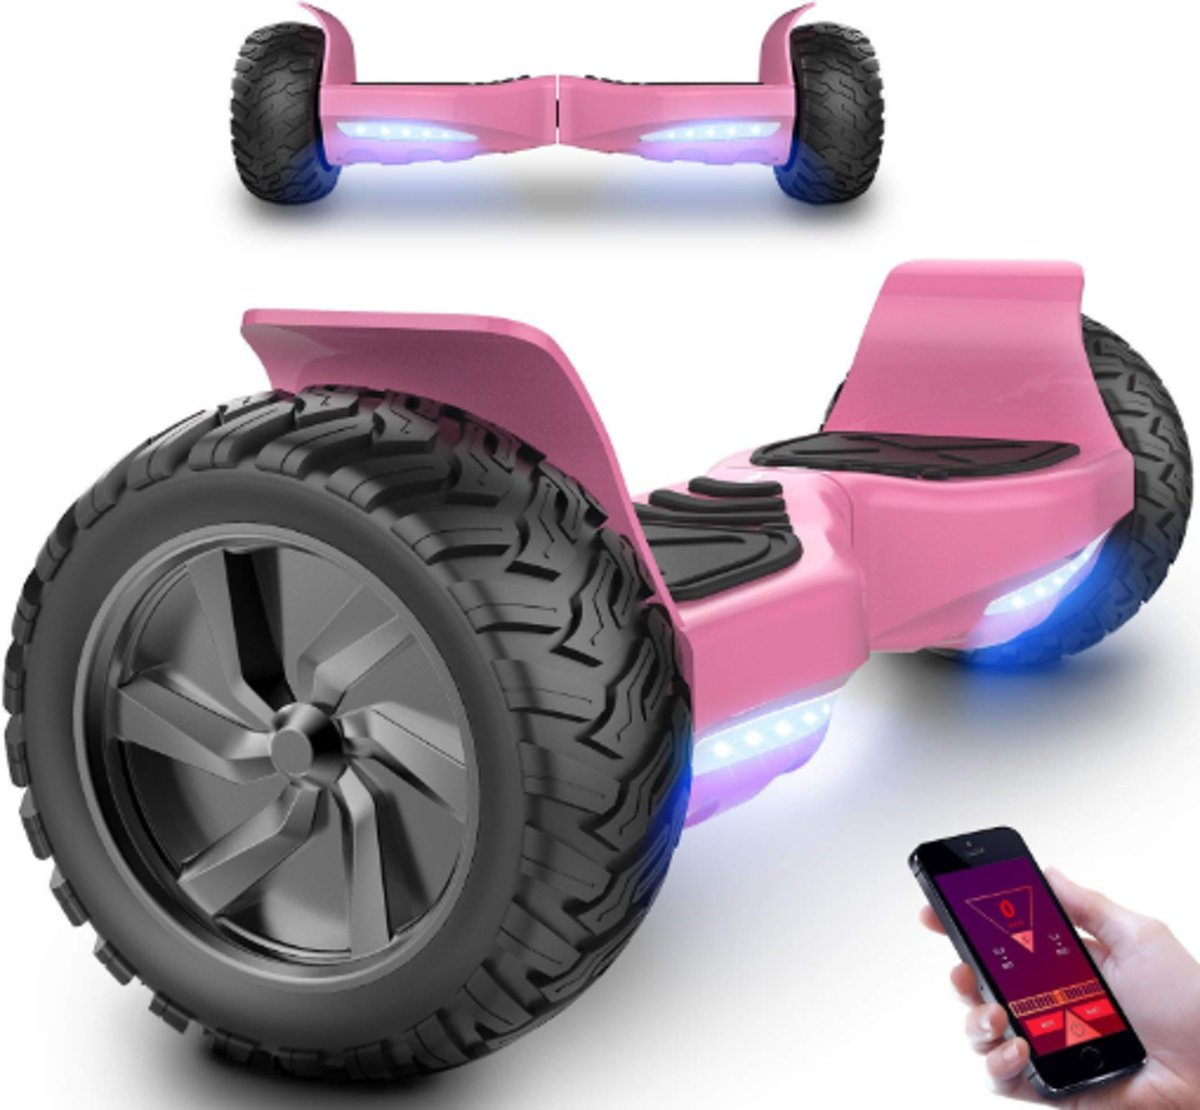 HOVERBOARD HUMMER Roze ALLE TERREINEN 8.5 INCHES Off Road App Functie met V5 Bluetooth speaker Technology Intelligence & Outdoor Speelgoed